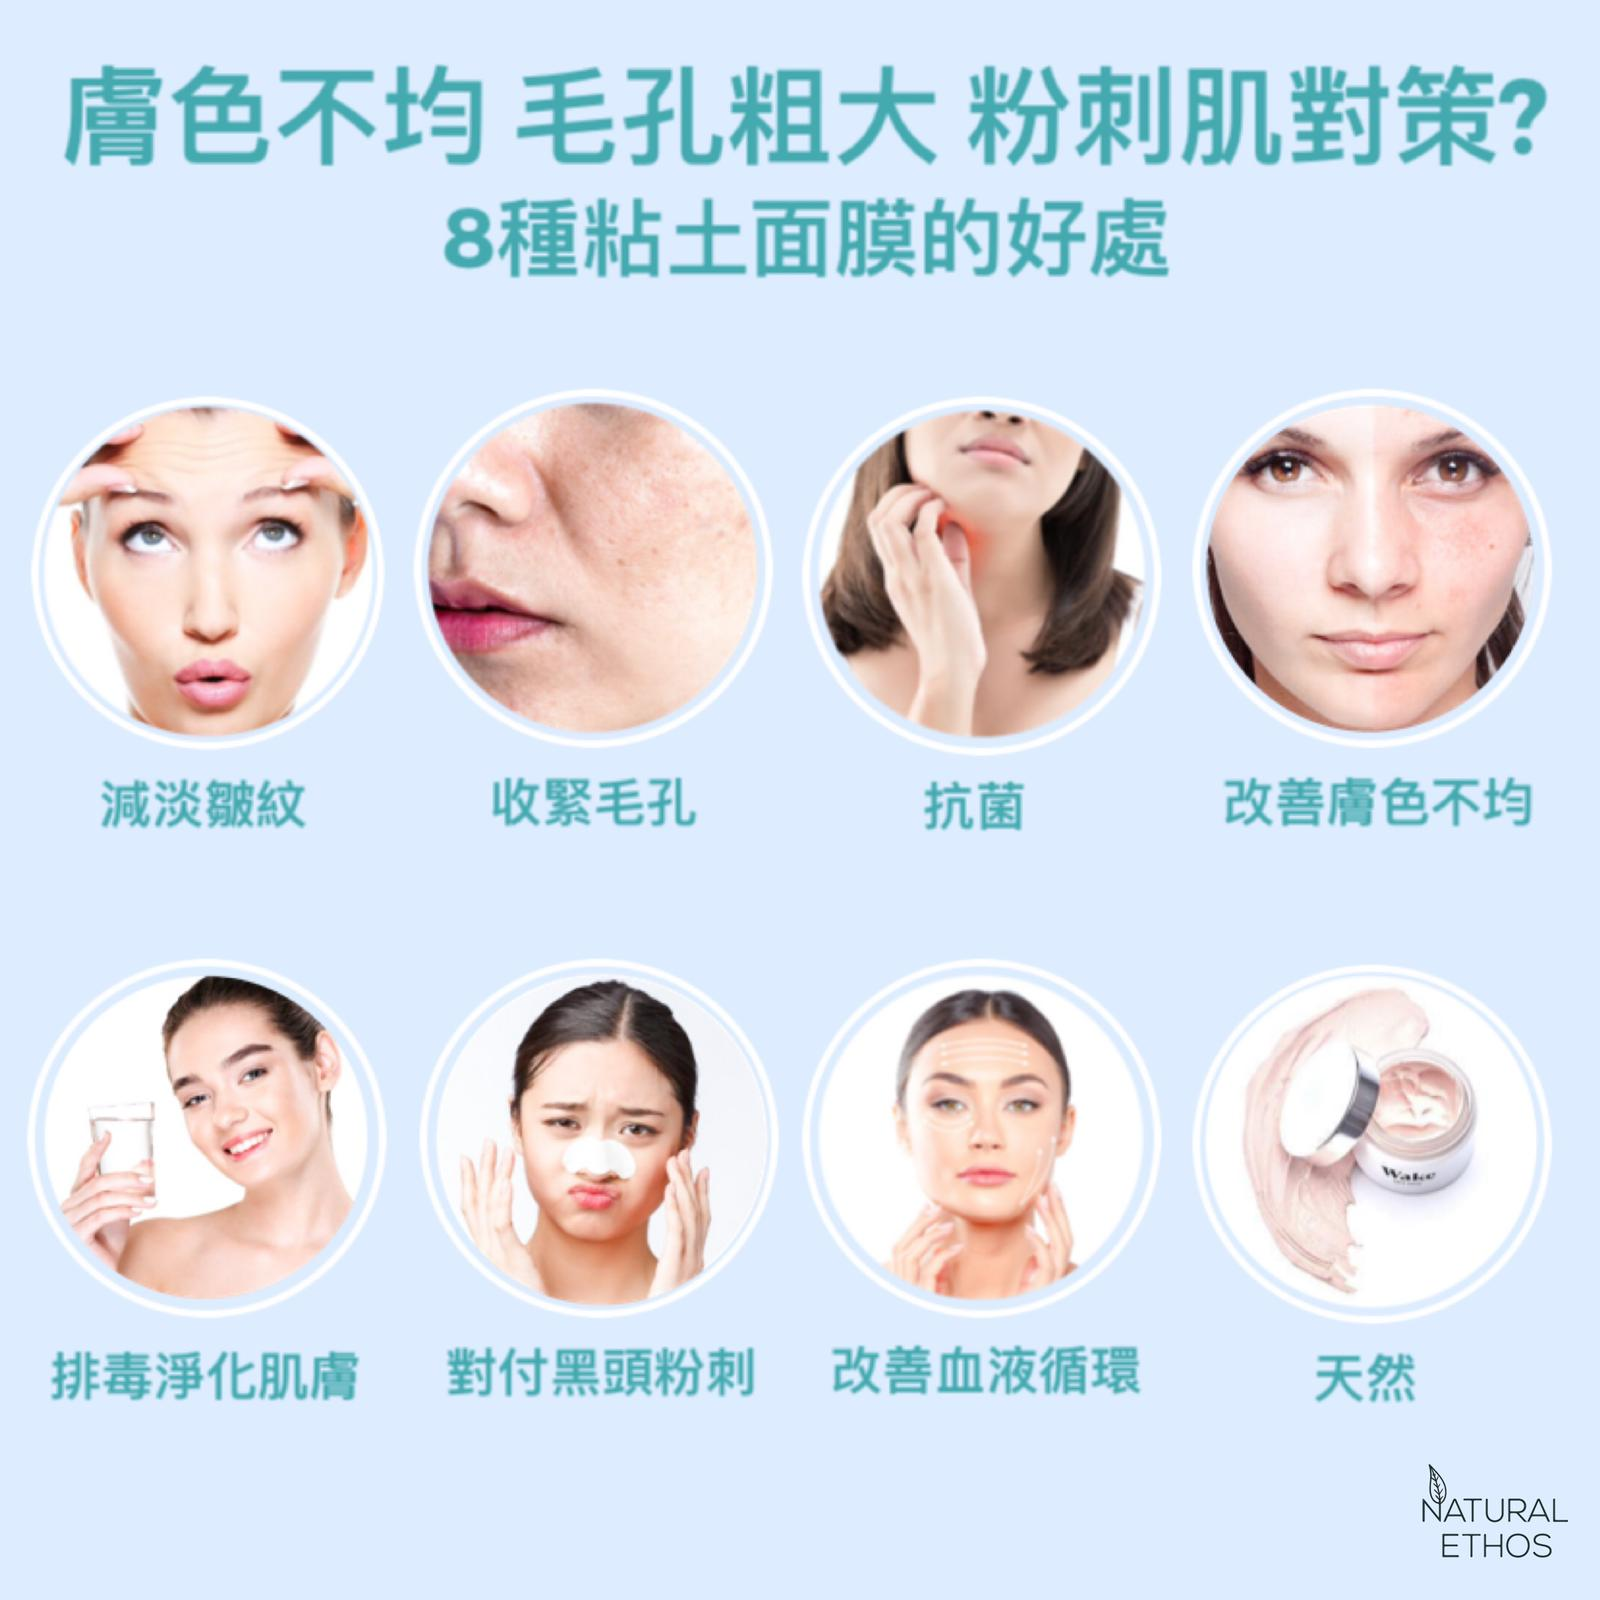 clay face mask skincare wake hk benefits